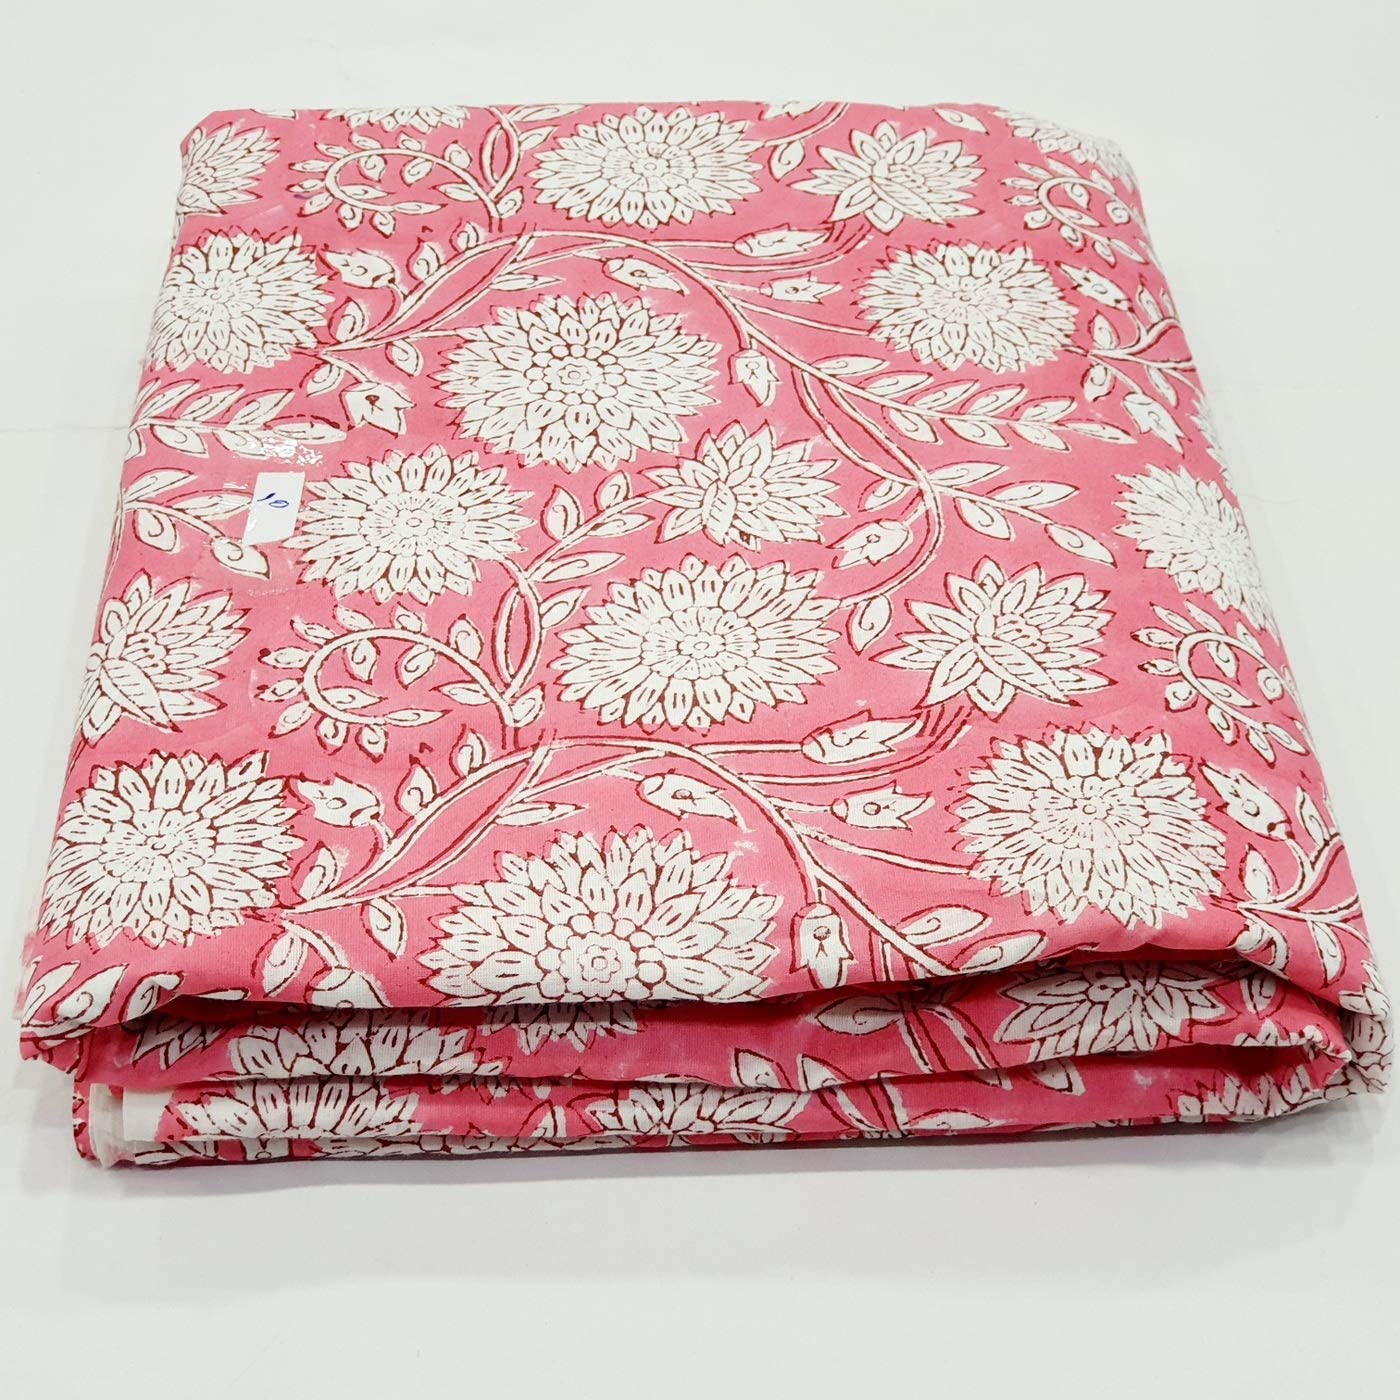 Flower print cotton Fabric By Yard womens clothing casual dresses block print fabric indian fabric vegetable dyes dresses stamped fabric